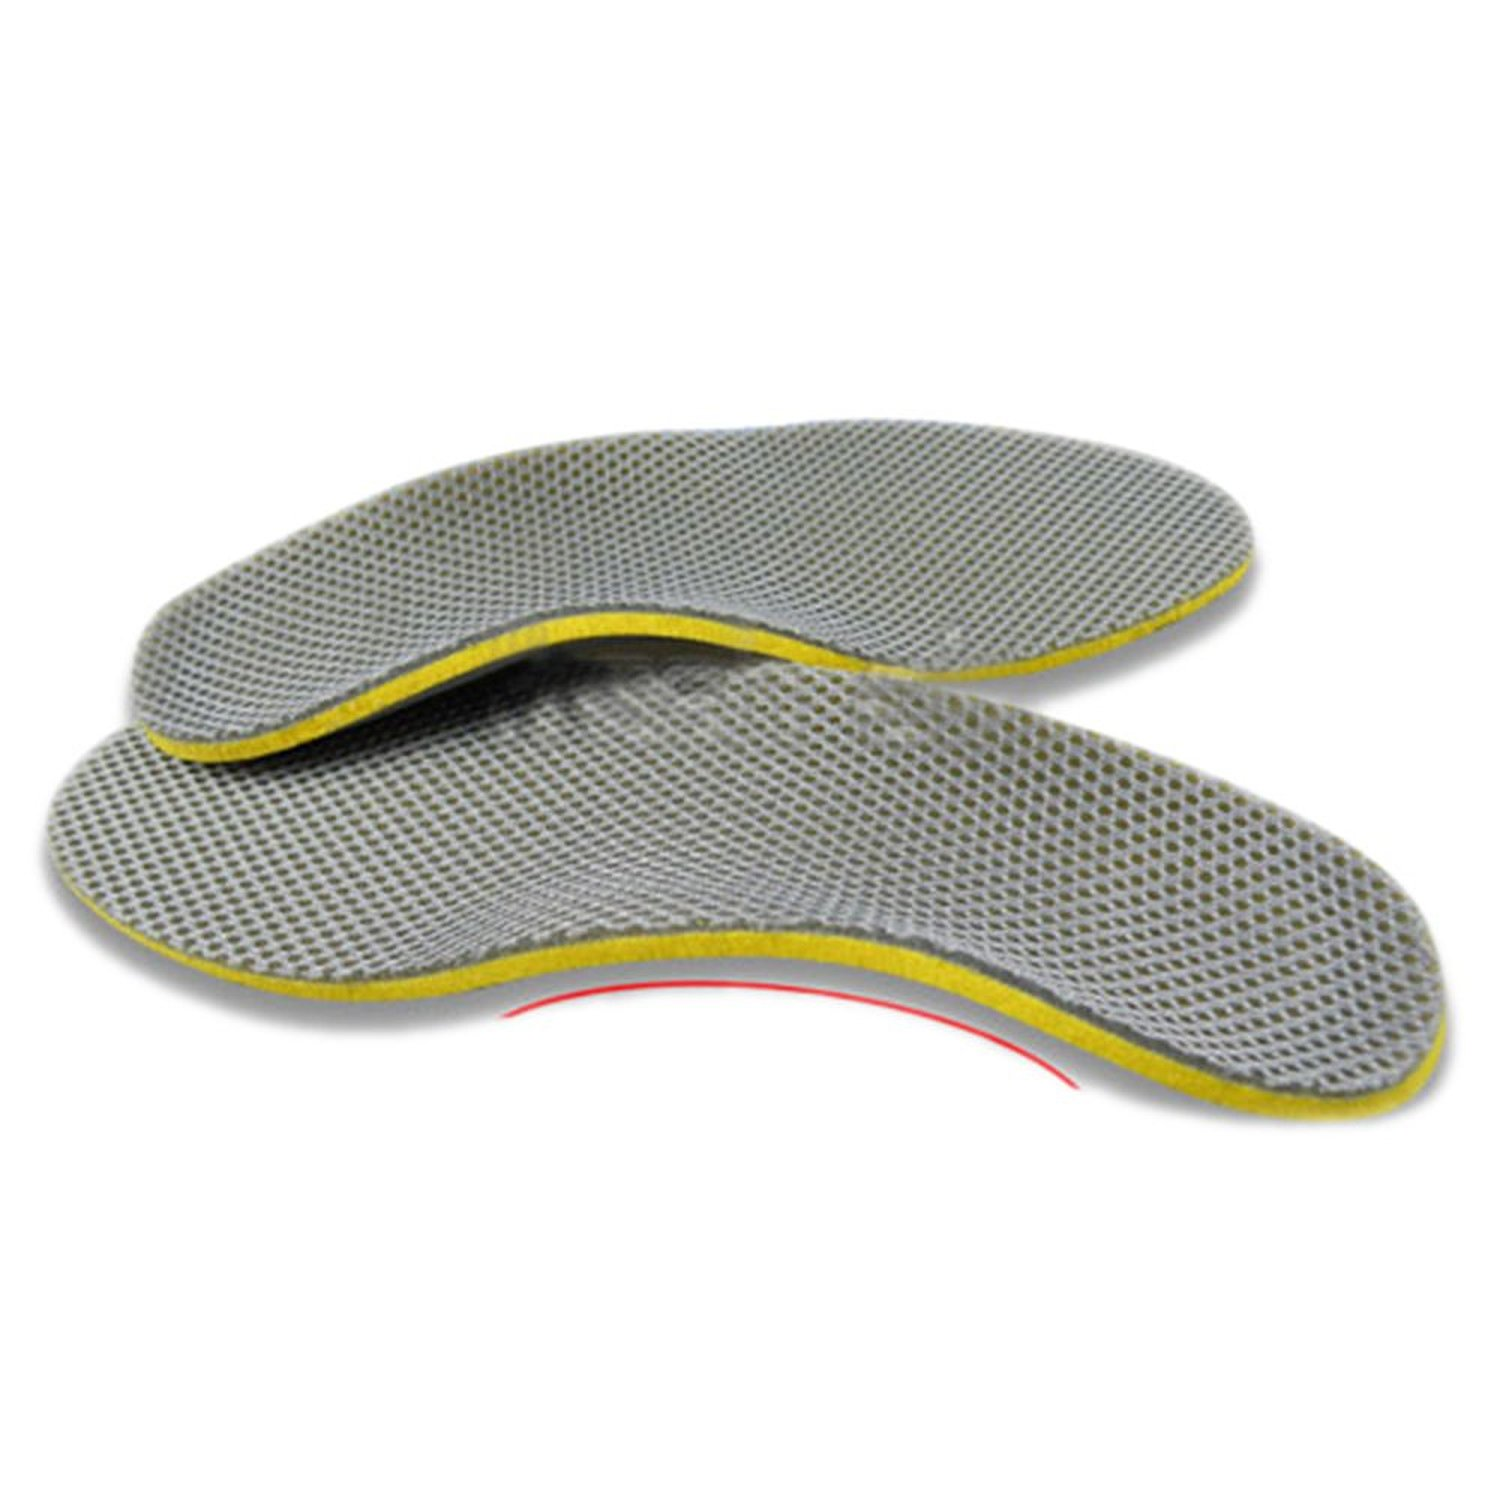 2017 Hot StyleComfortable Orthotic Shoes Insoles Inserts High Arch Support Pad (S) yellow+Gray